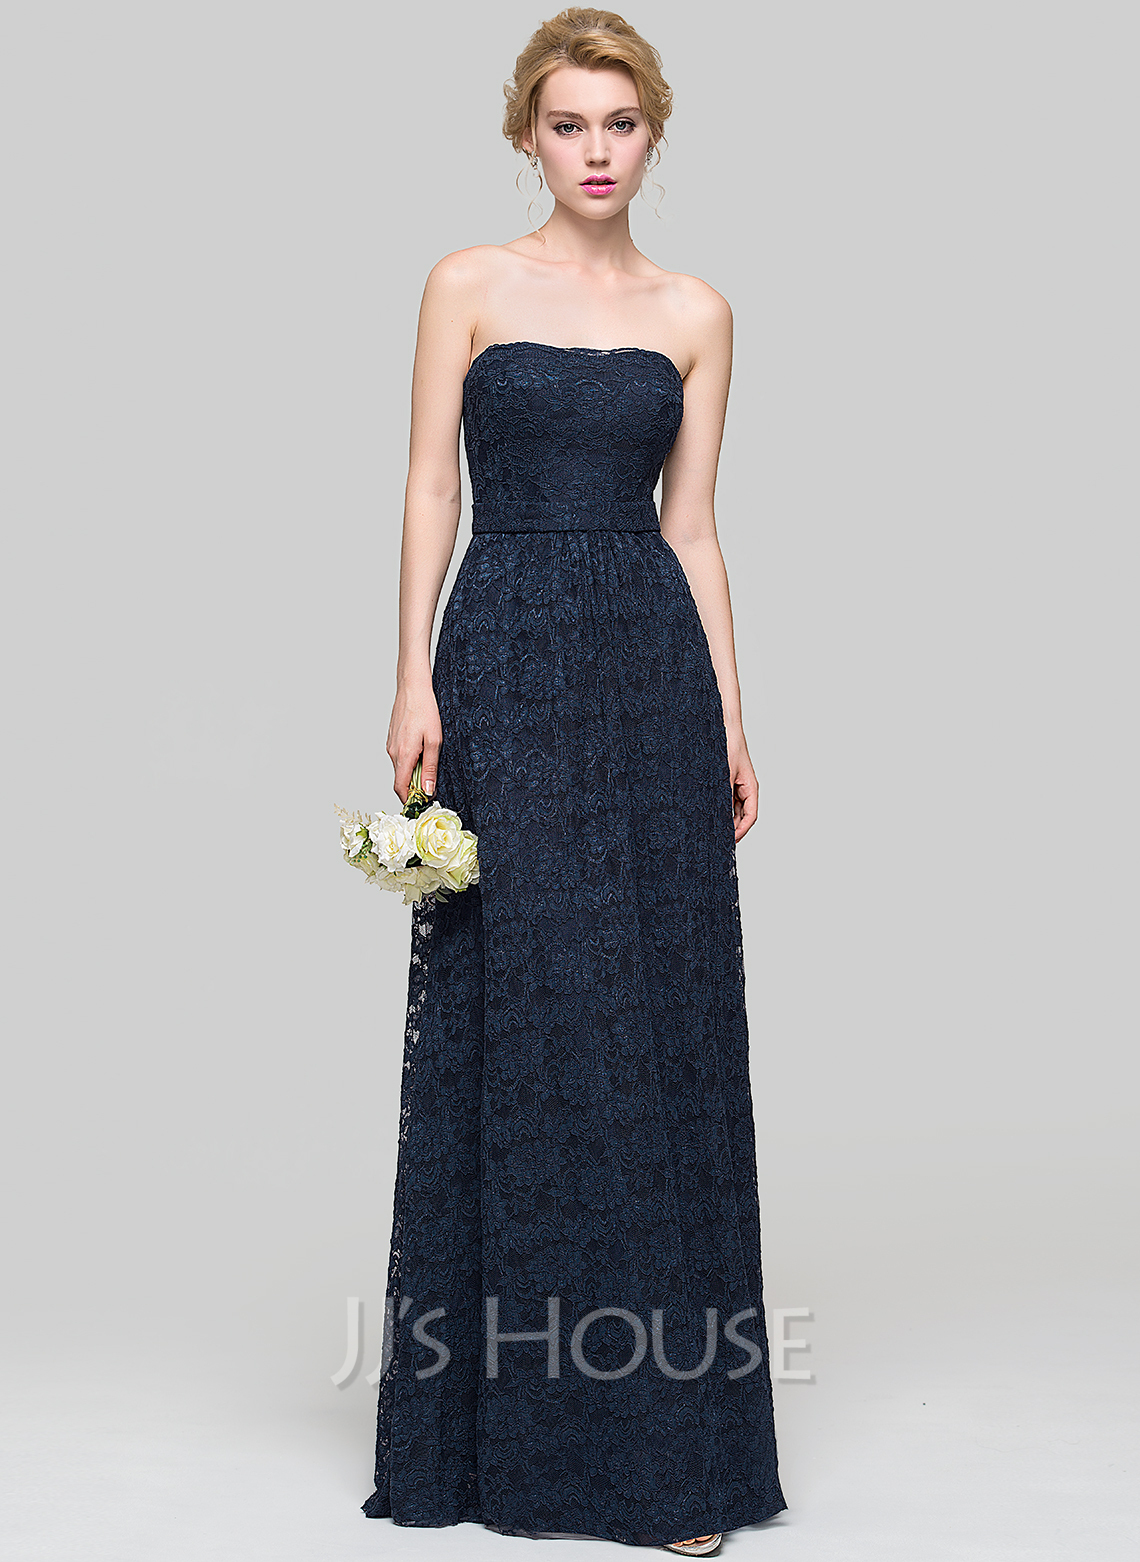 Strapless Floor-Length Lace Bridesmaid Dress